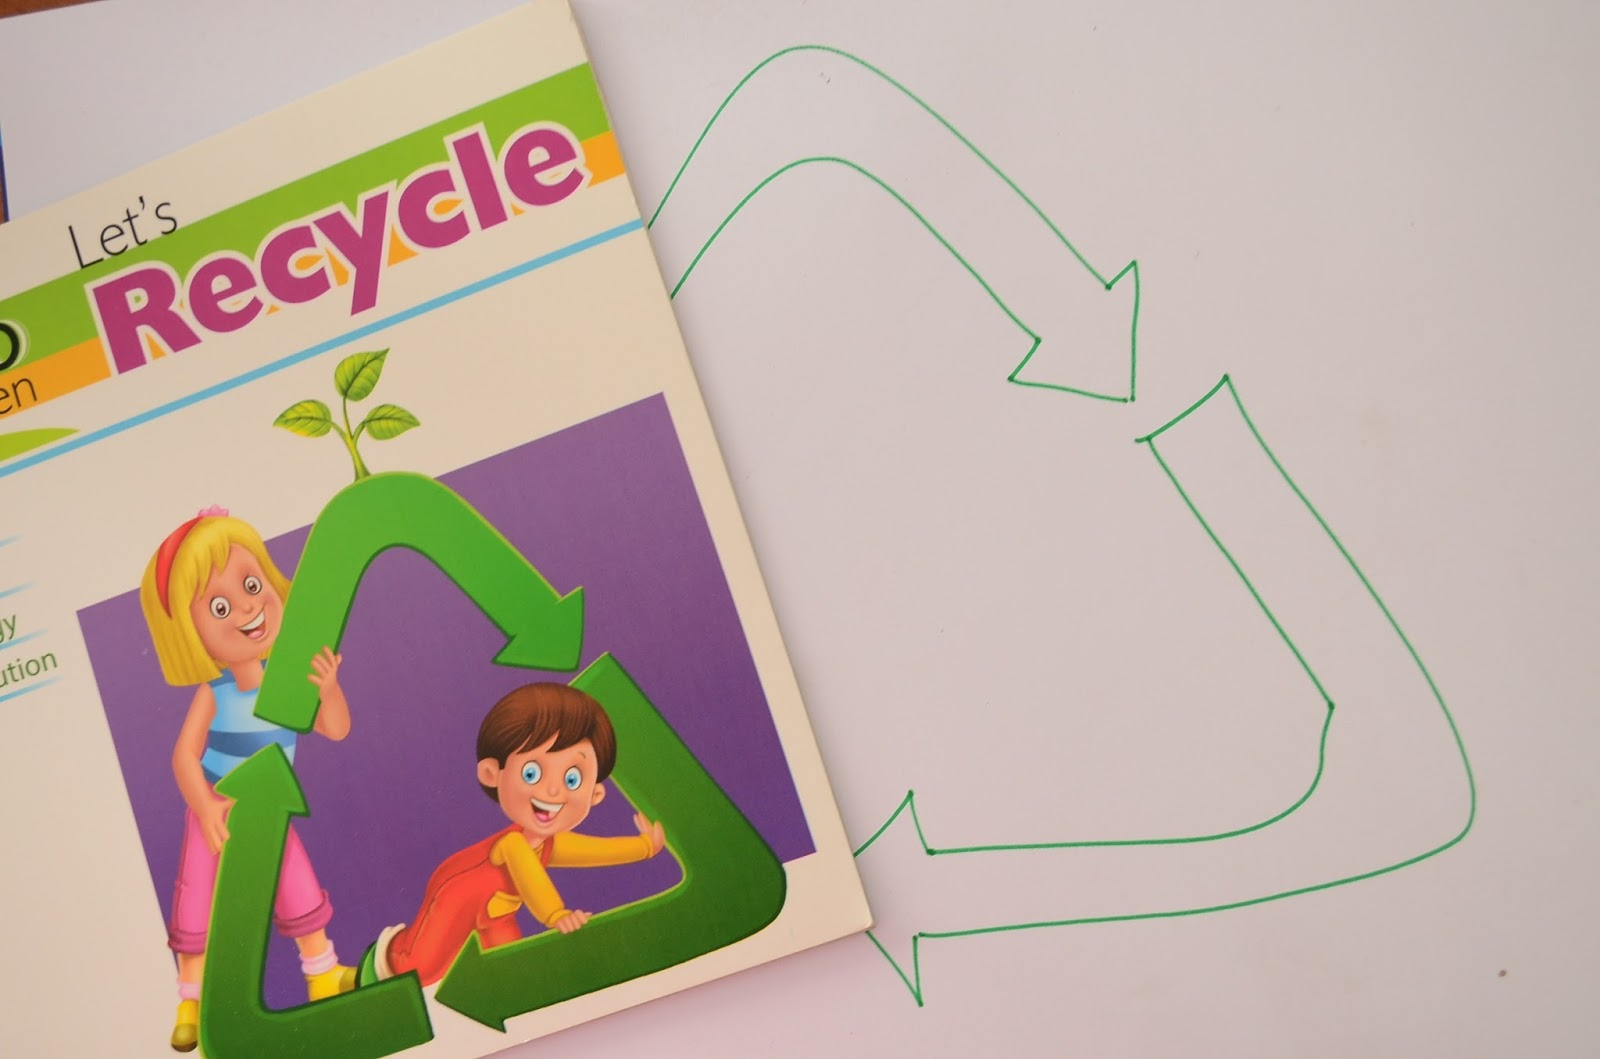 The Practical Mom: Let's Go Green: Books & Conversation to Increase Children's Awareness about the Environment